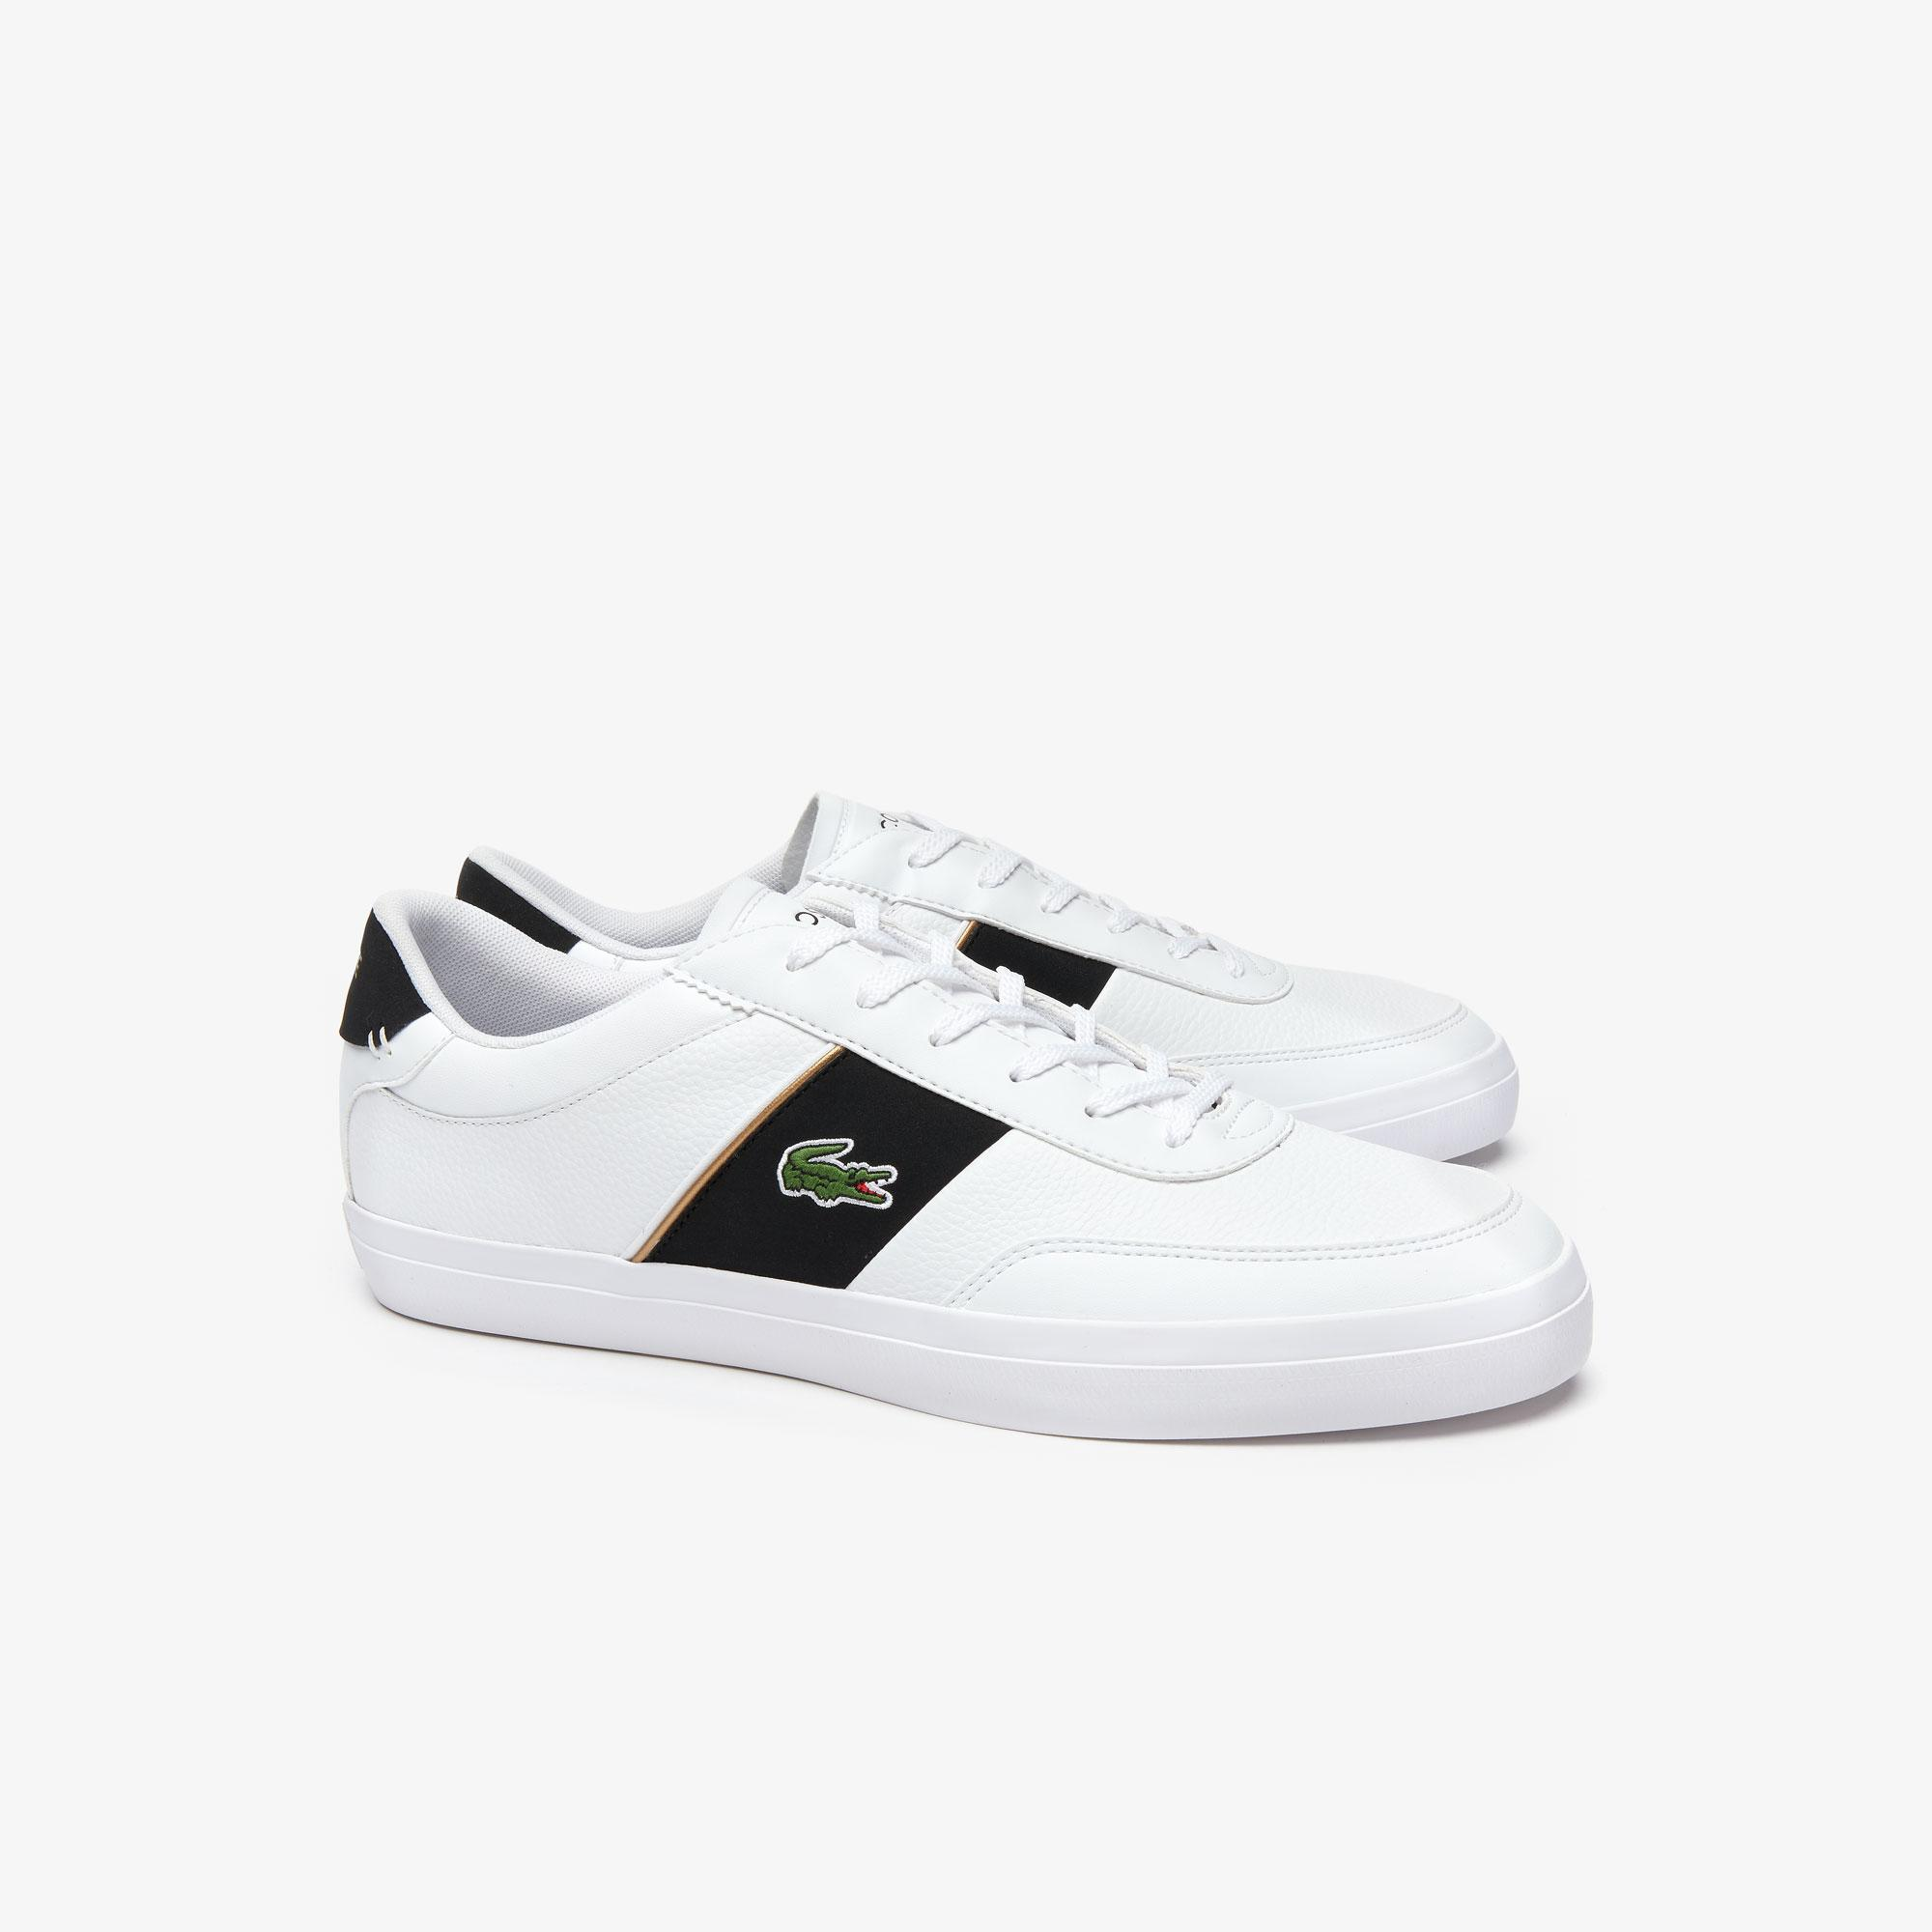 Lacoste Men's Court-Master 319 6 Cma Casual Leather Sneakers